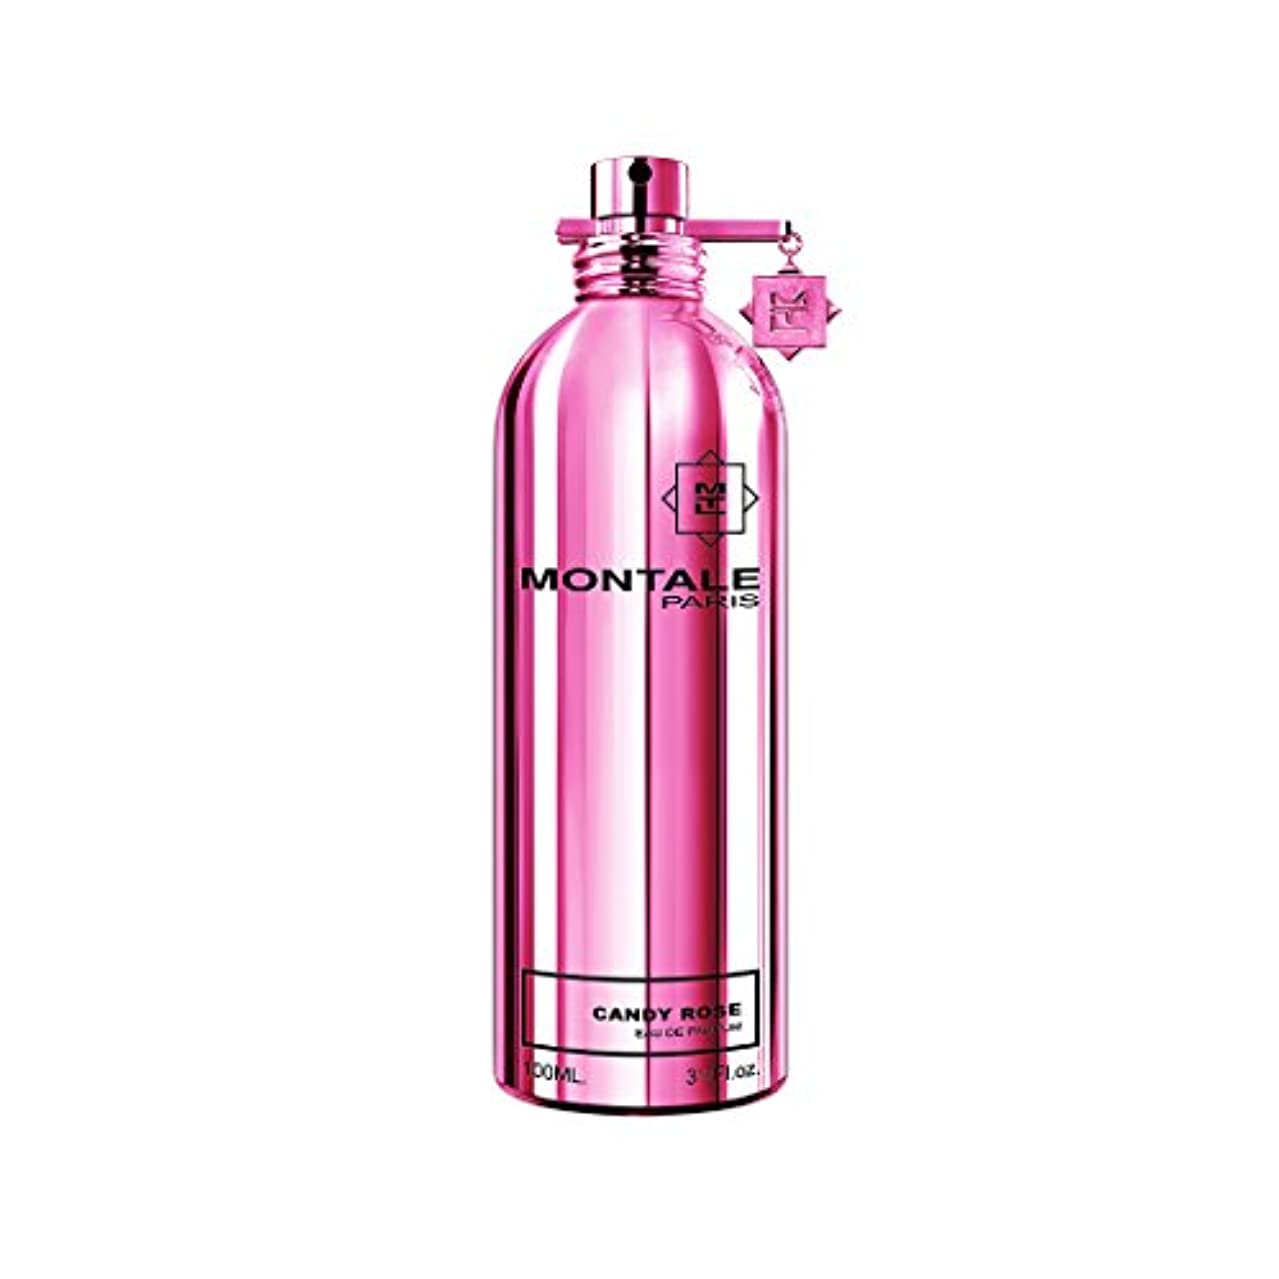 Montale Candy Rose by Montale Eau De Parfum Spray 3.4 oz / 100 ml (Women)